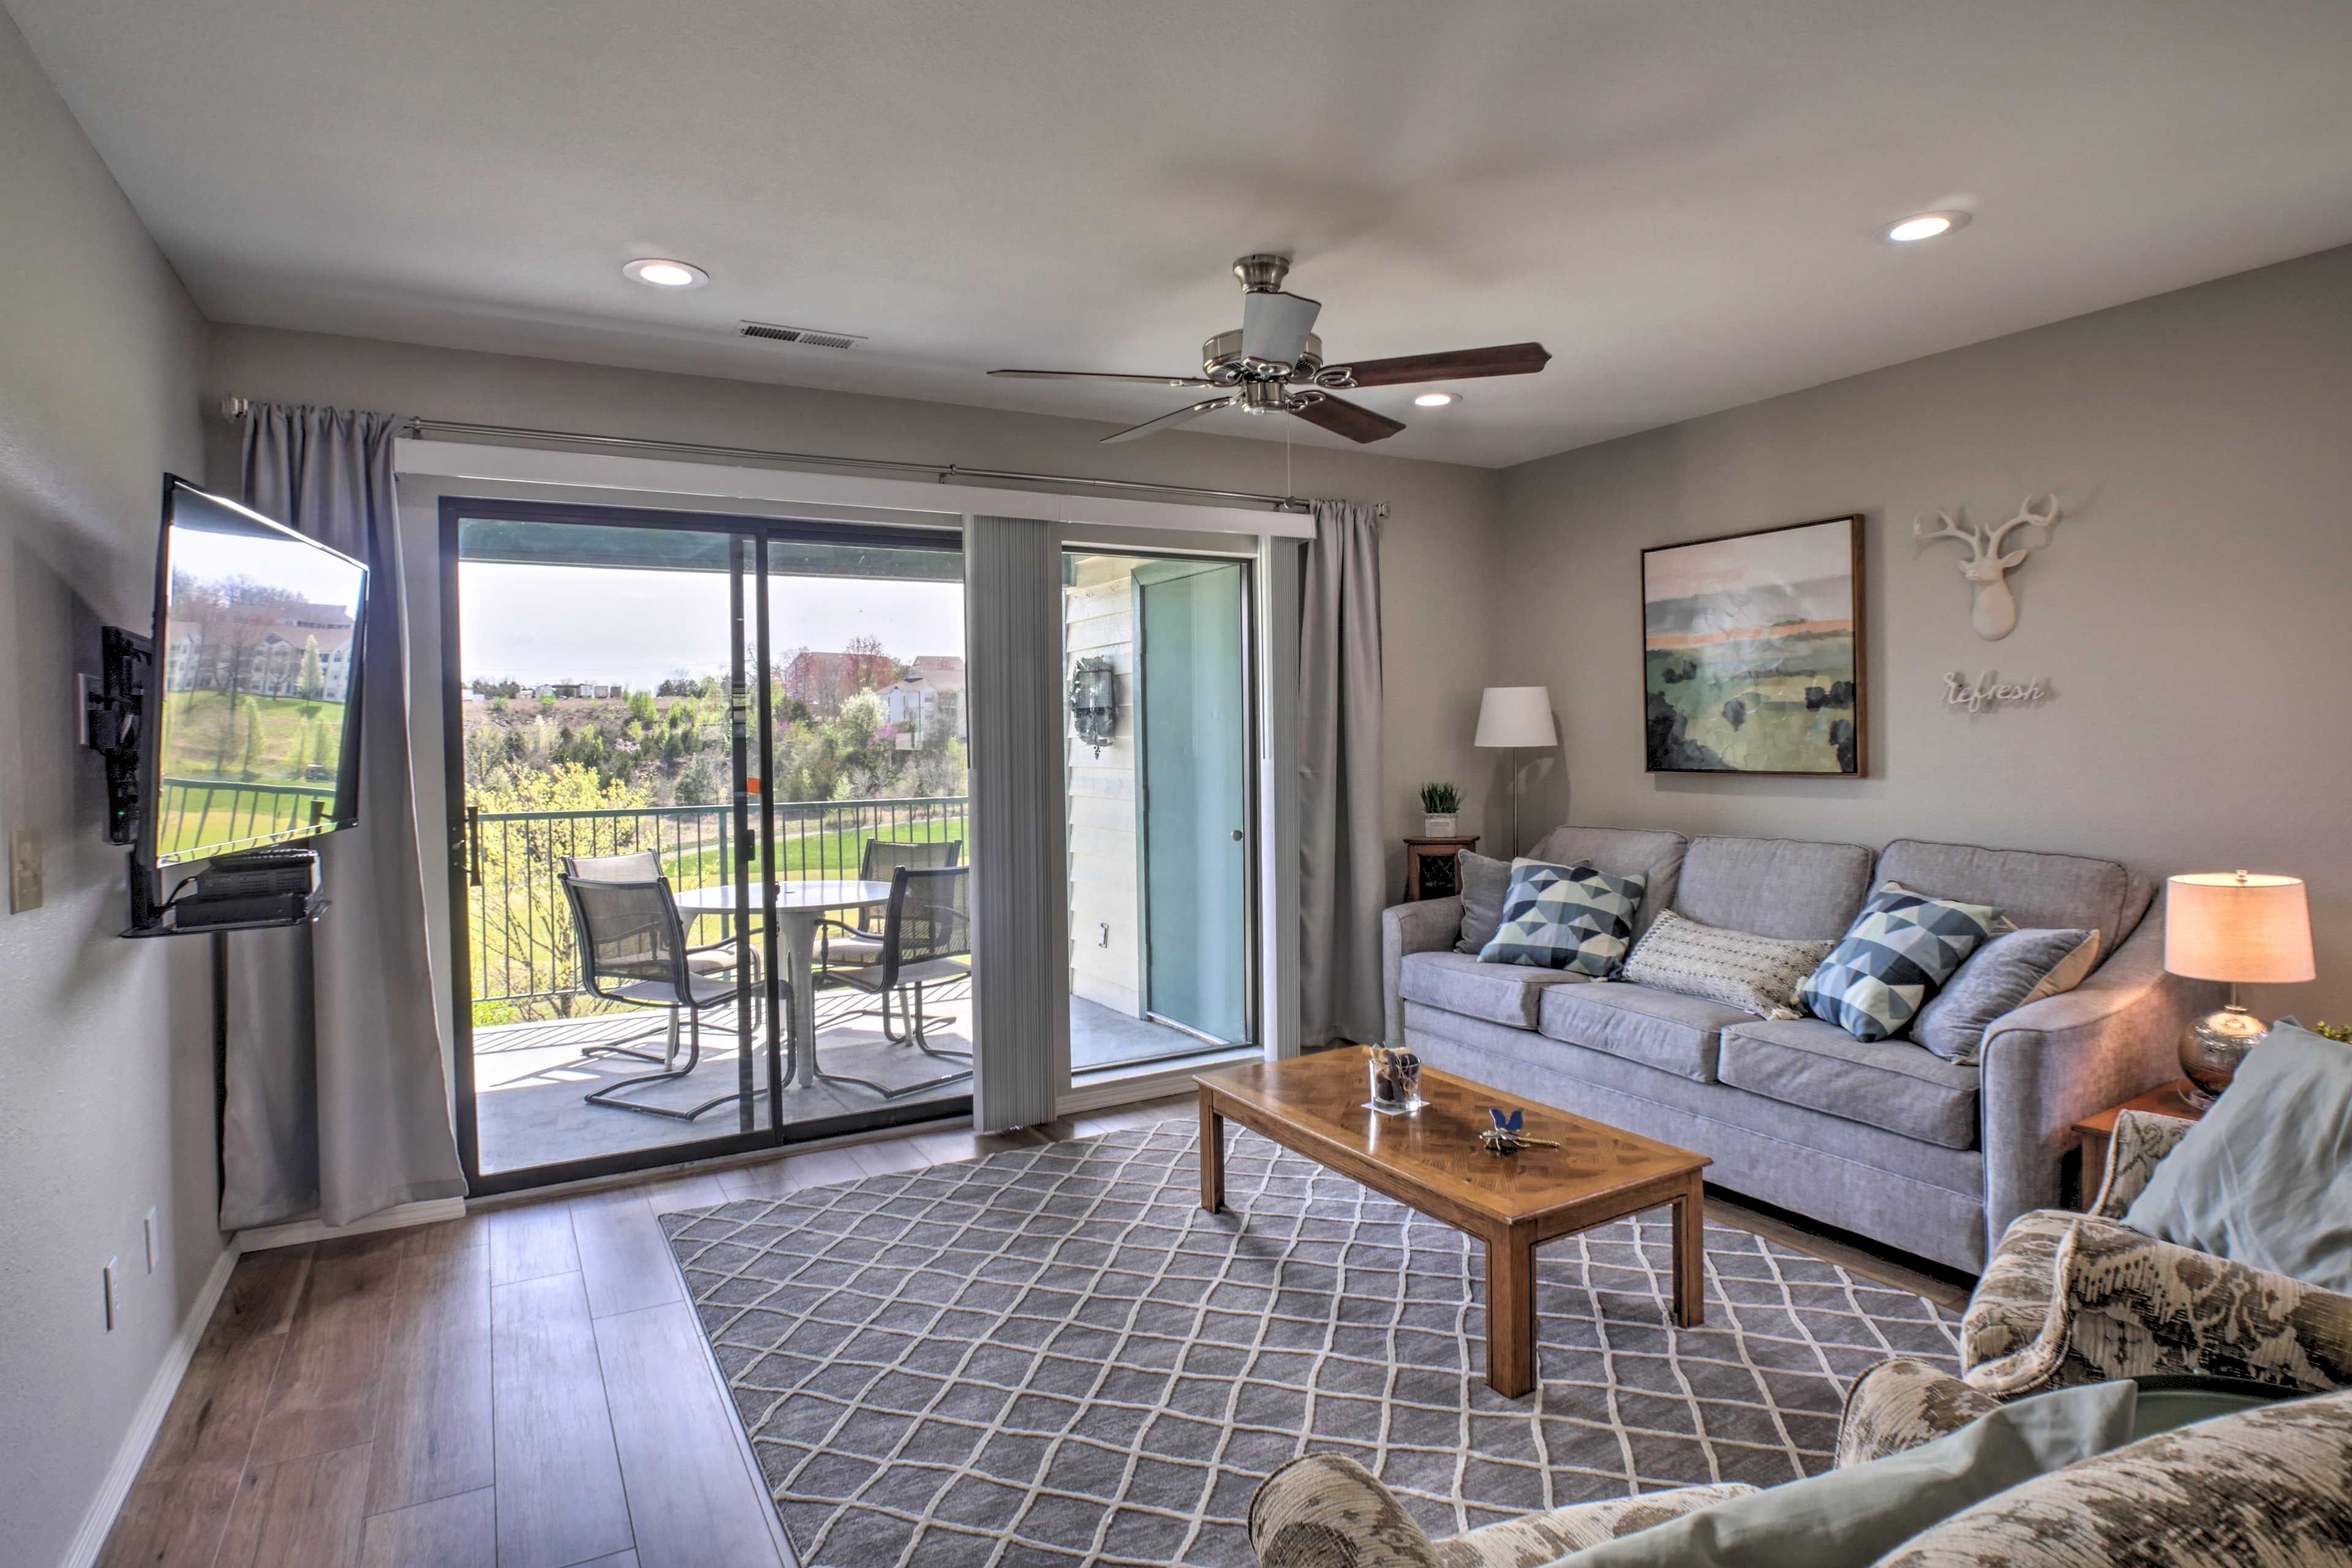 Open the sliding glass door to let the fresh air inside.